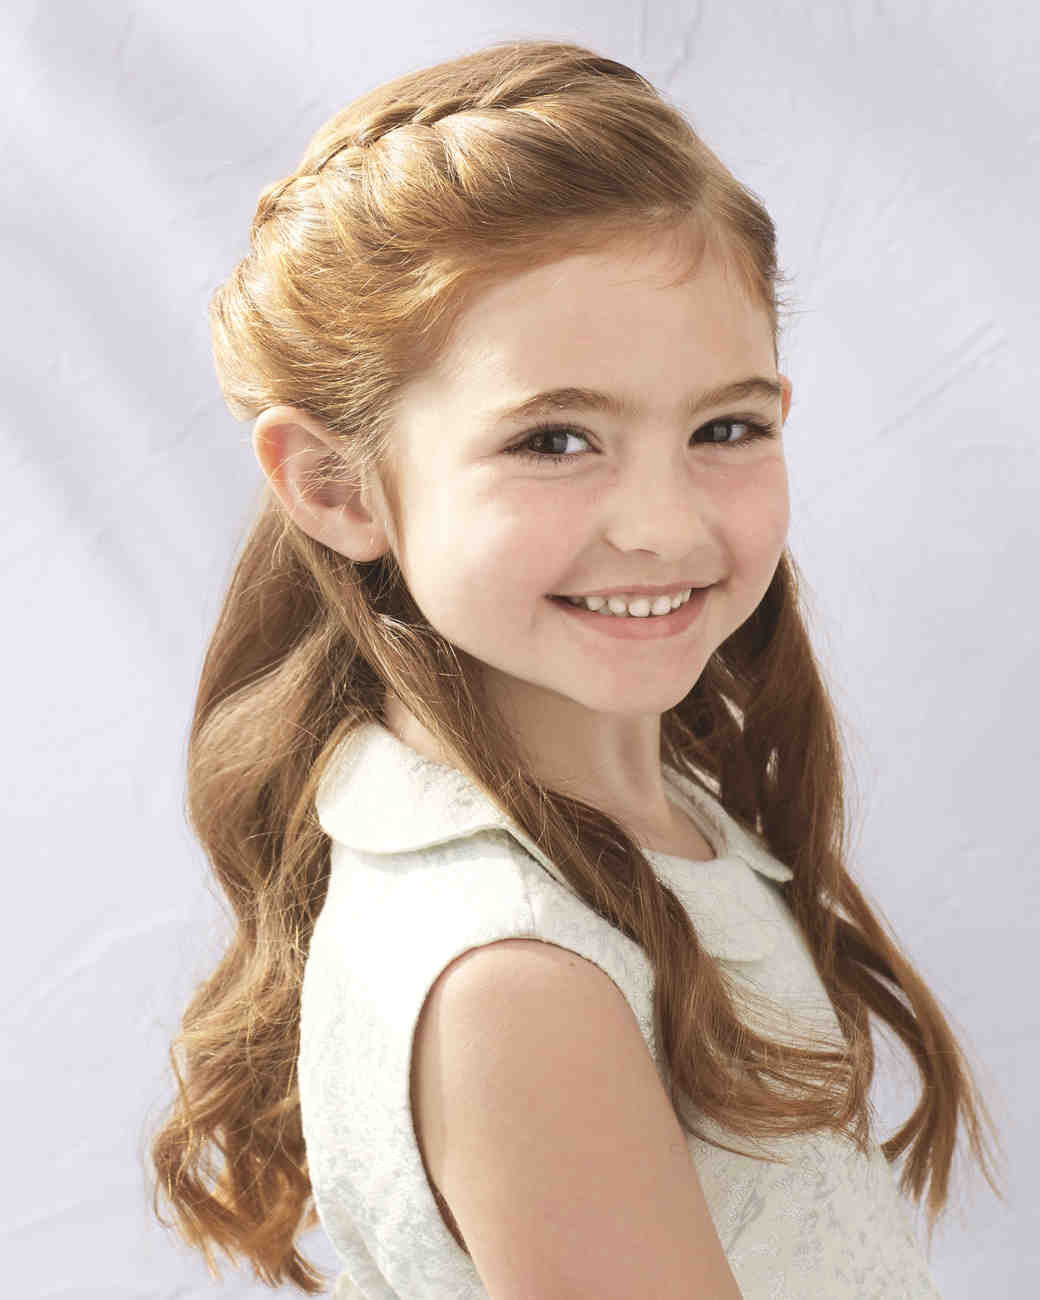 Best ideas about Girl Hairstyle . Save or Pin Flower Girl Hairstyles That Are Cute and fy Now.